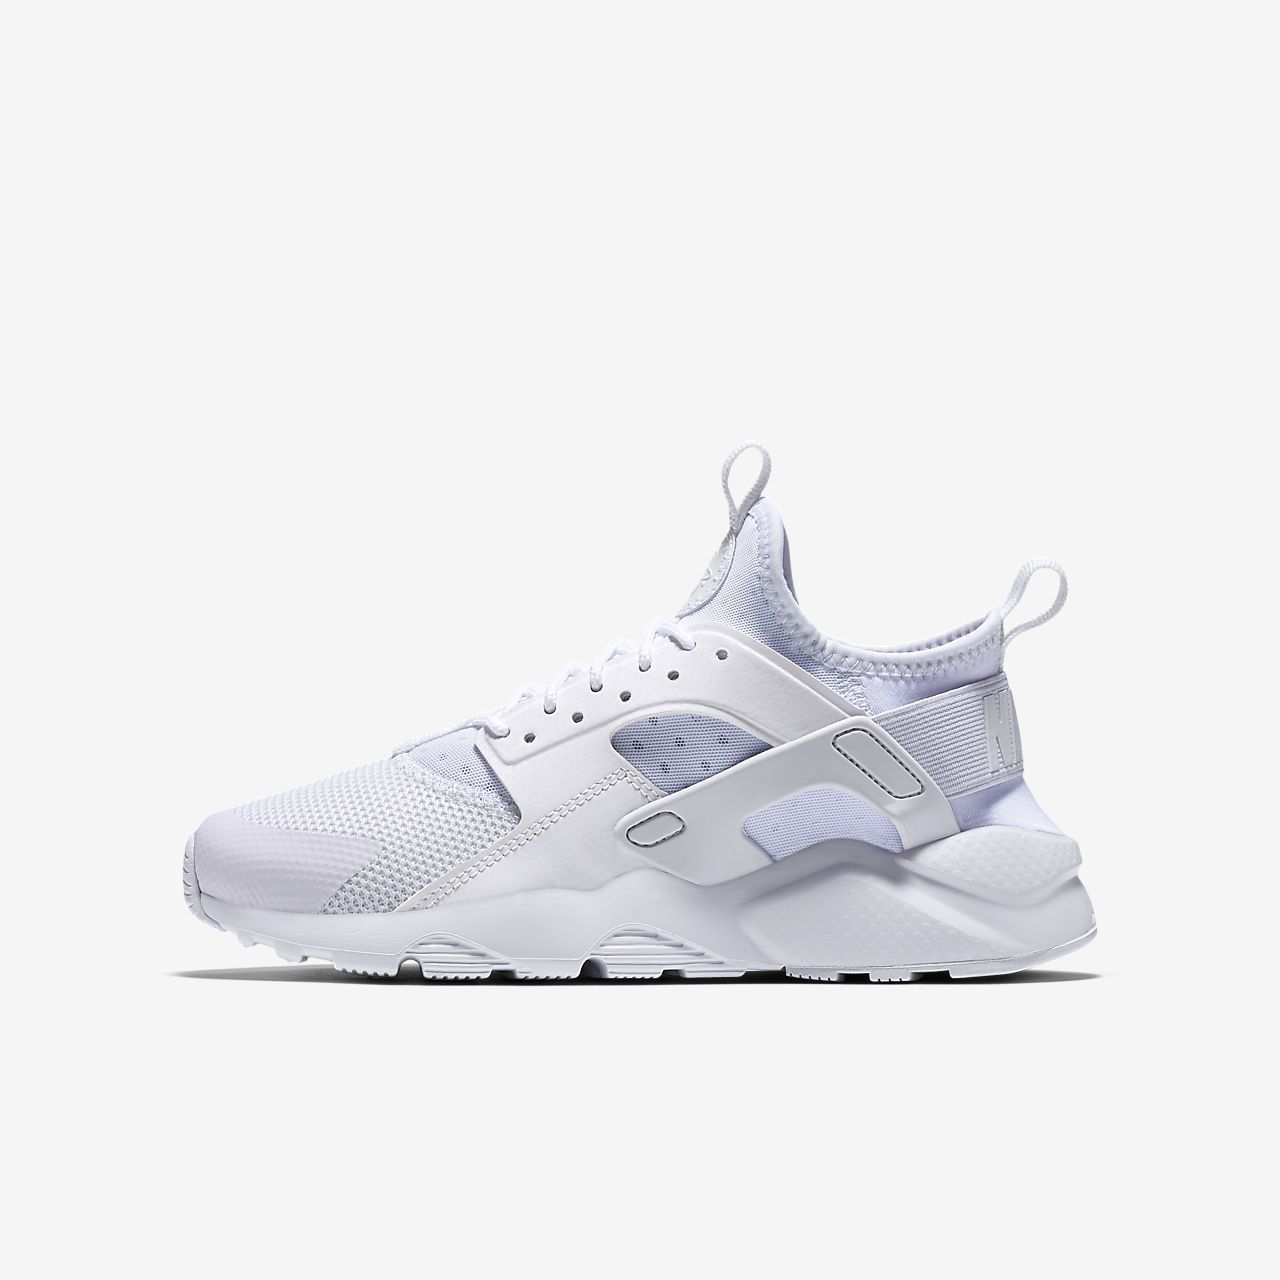 8cb4a7c5b59 Nike Air Huarache Ultra Older Kids' Shoe